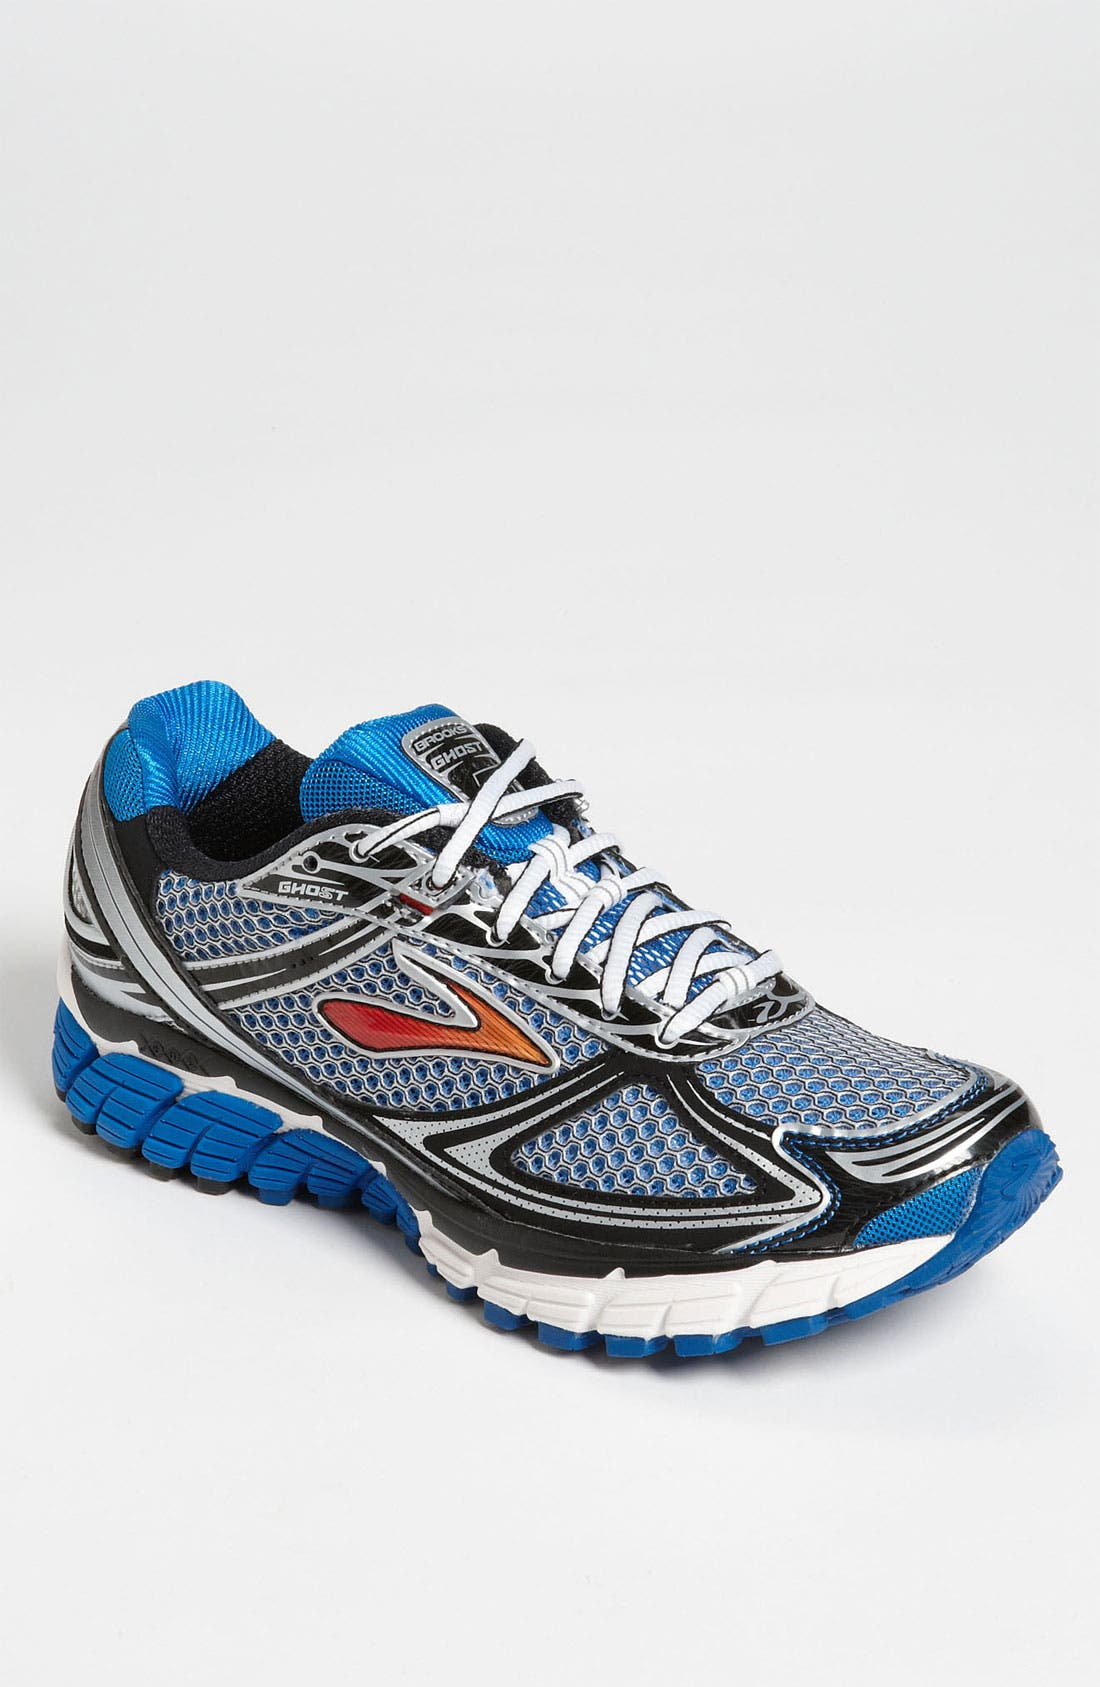 Alternate Image 1 Selected - Brooks 'Ghost 5' Running Shoe (Men) (Online Only)